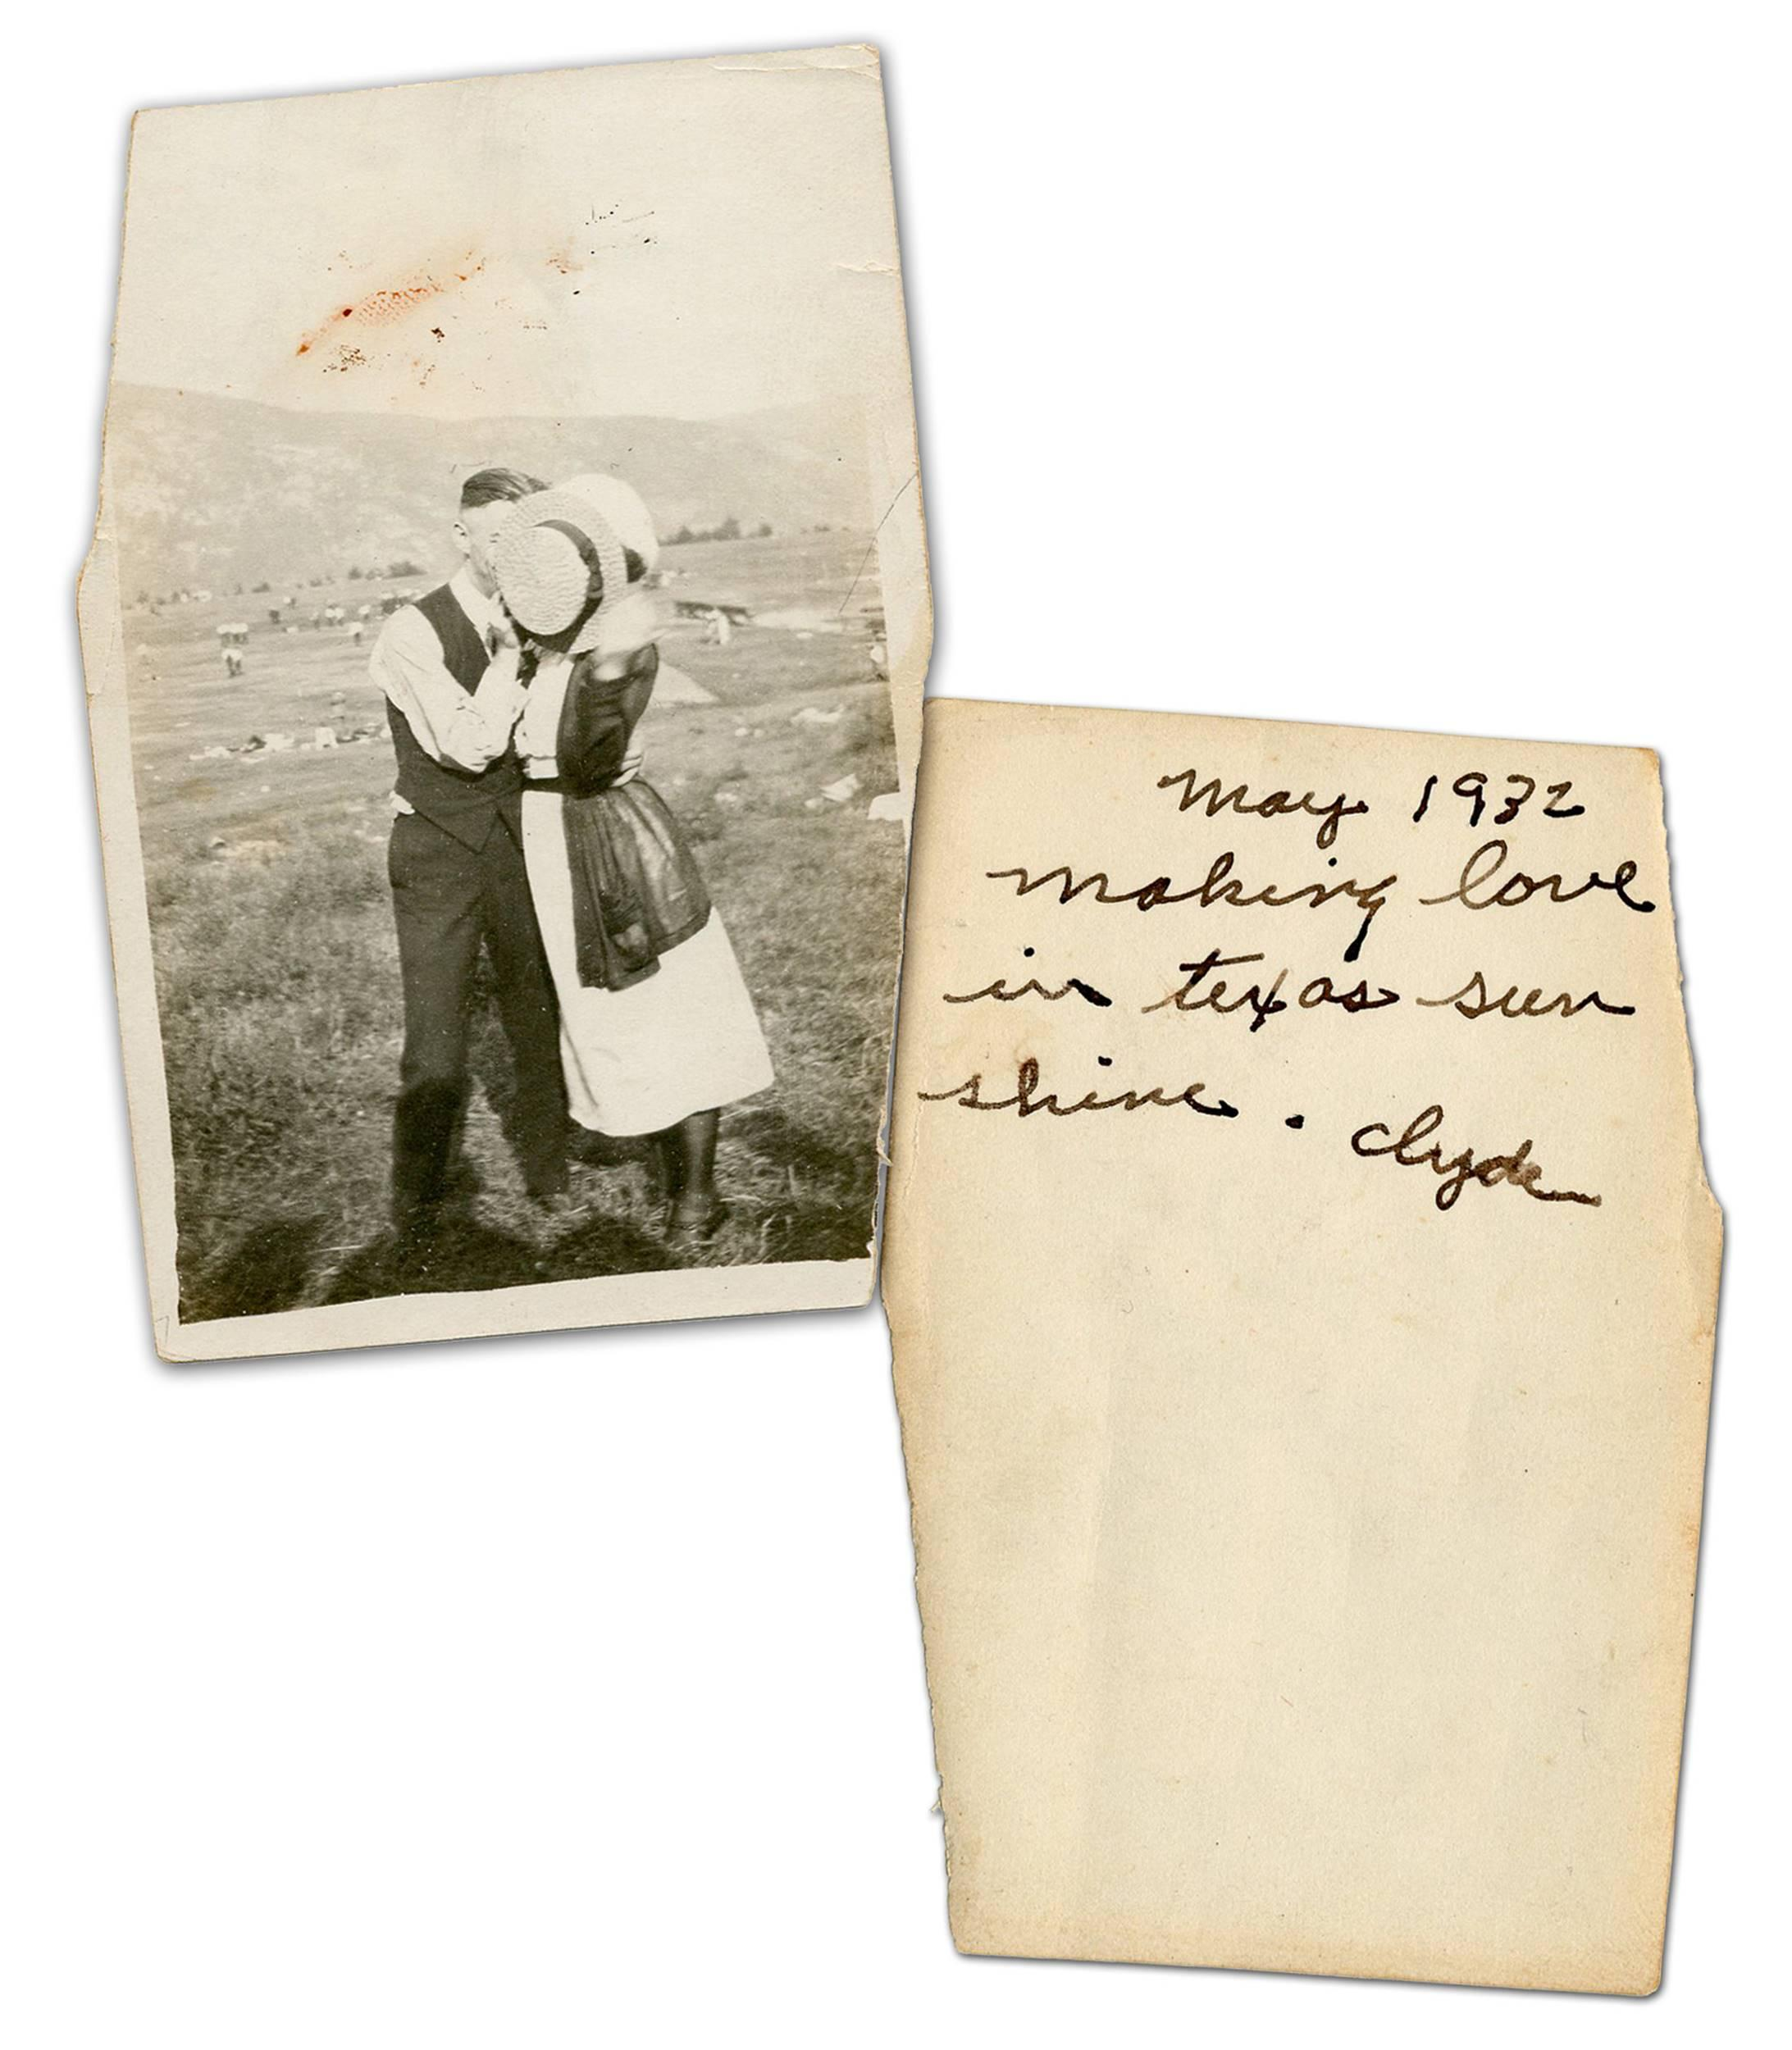 "Clyde Barrow Signed & Annotated Original Photograph of the Outlaws, Possibly Blood-Stained & Recovered from the Trunk of the ""Death Car"" -- Exceedingly Rare! Ex. Charles Hamilton"